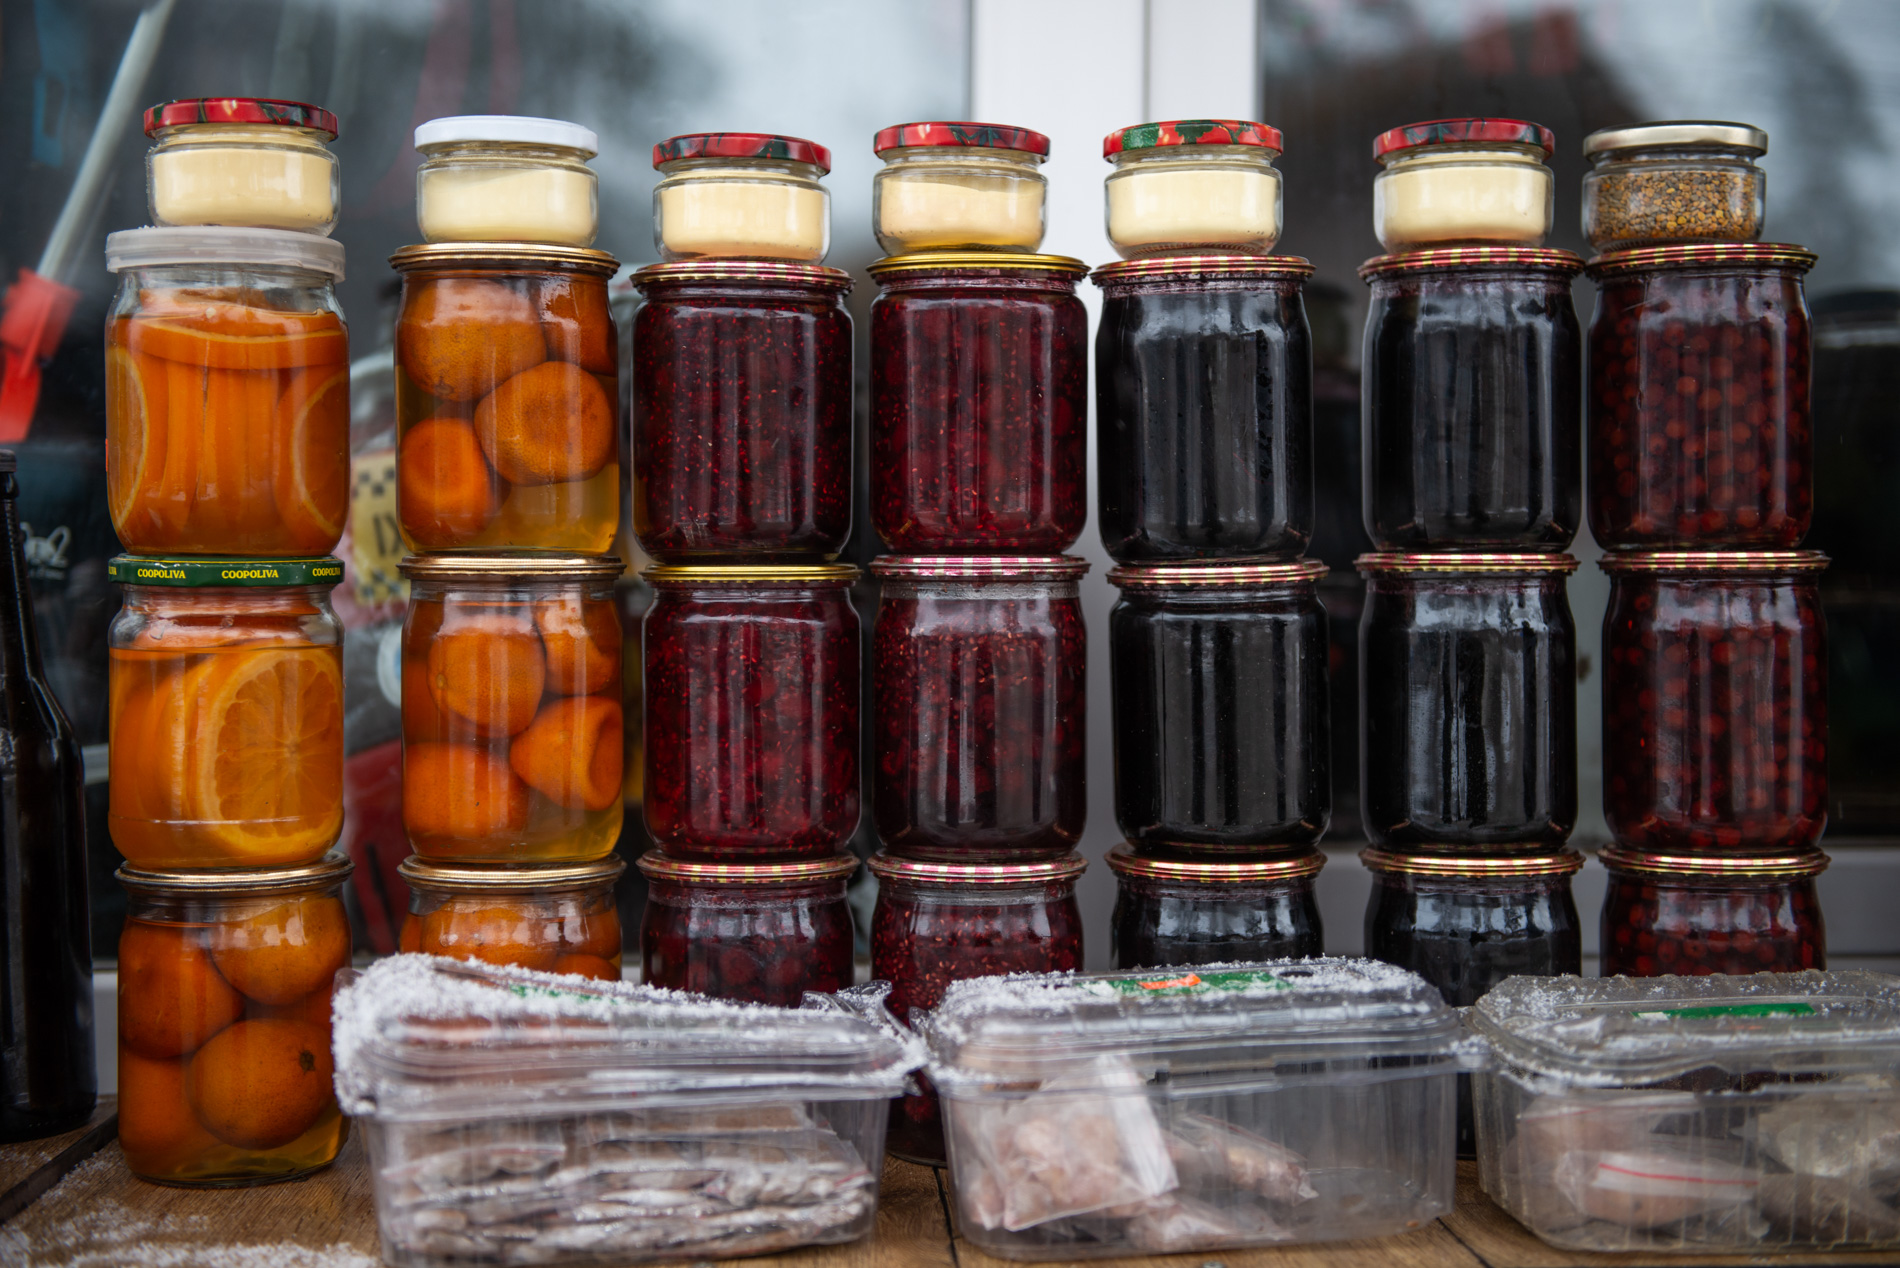 Naira Kurmashvili has been selling Bakuriani delicacies for the last thirty years. One jar costs ₾10 [$3], and her income depends on how many of those she'll sell. Photo: Tamuna Chkareuli/OC Media.